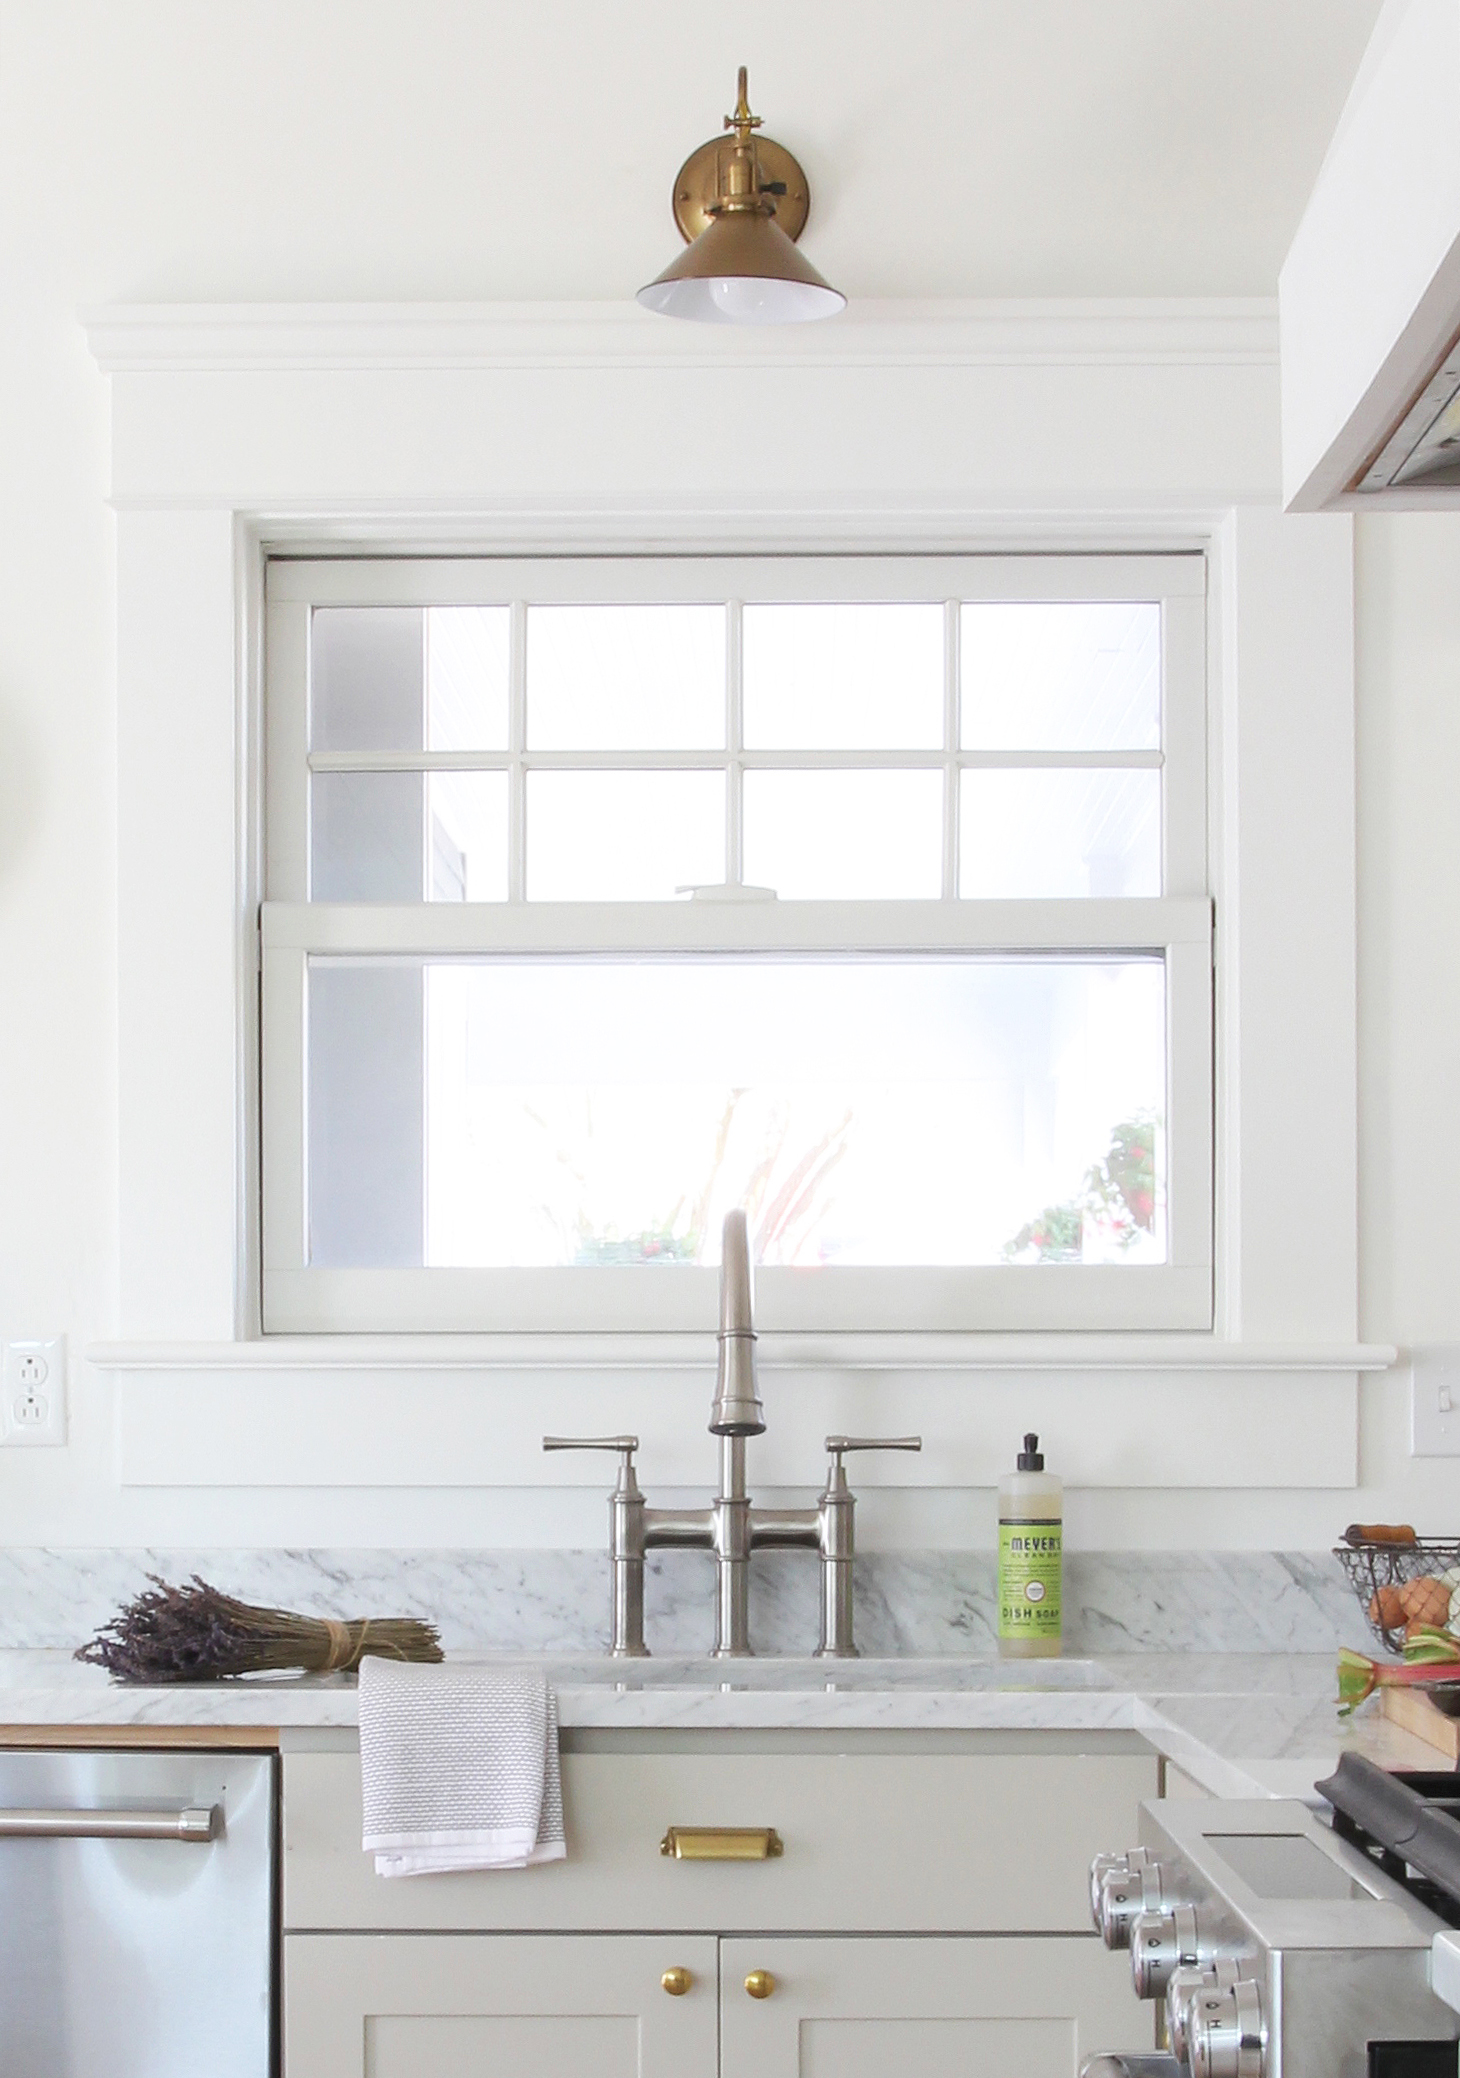 The Grit and Polish - Porch House Kitchen Sink small